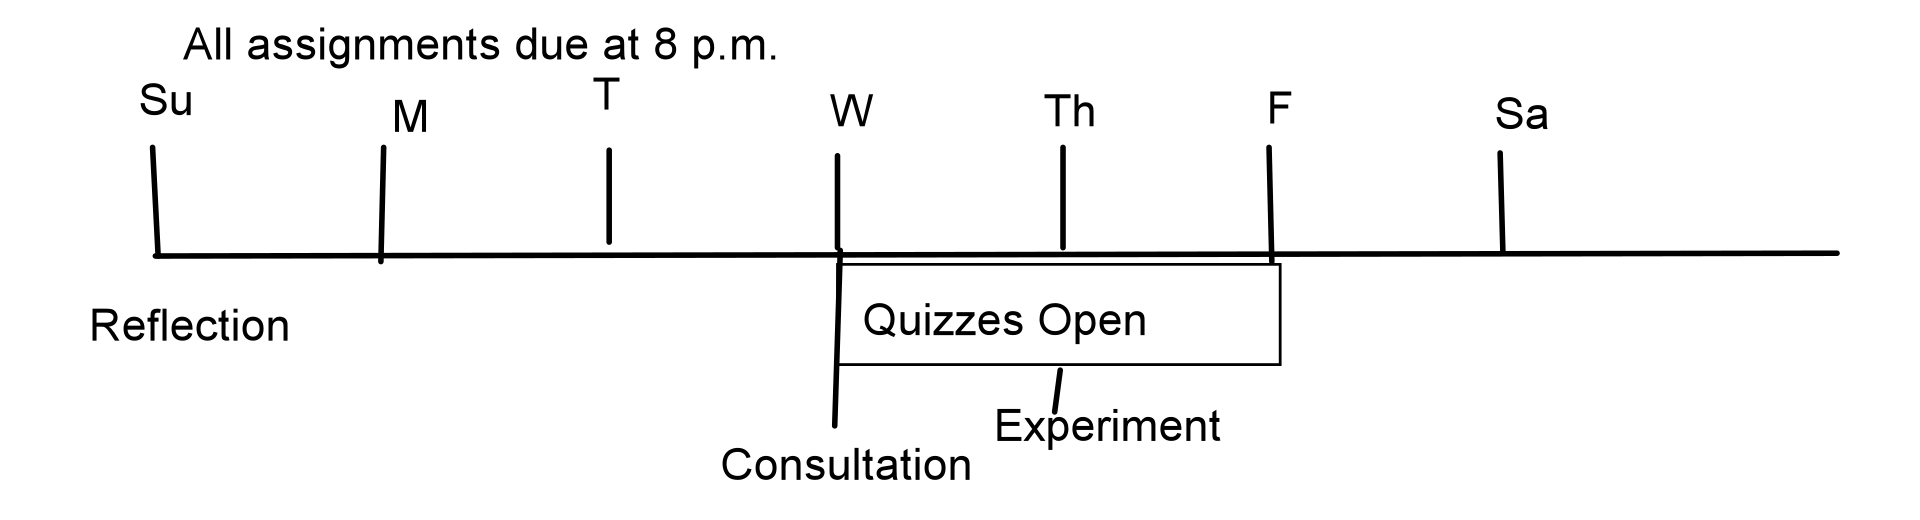 Image of Weekly Schedule